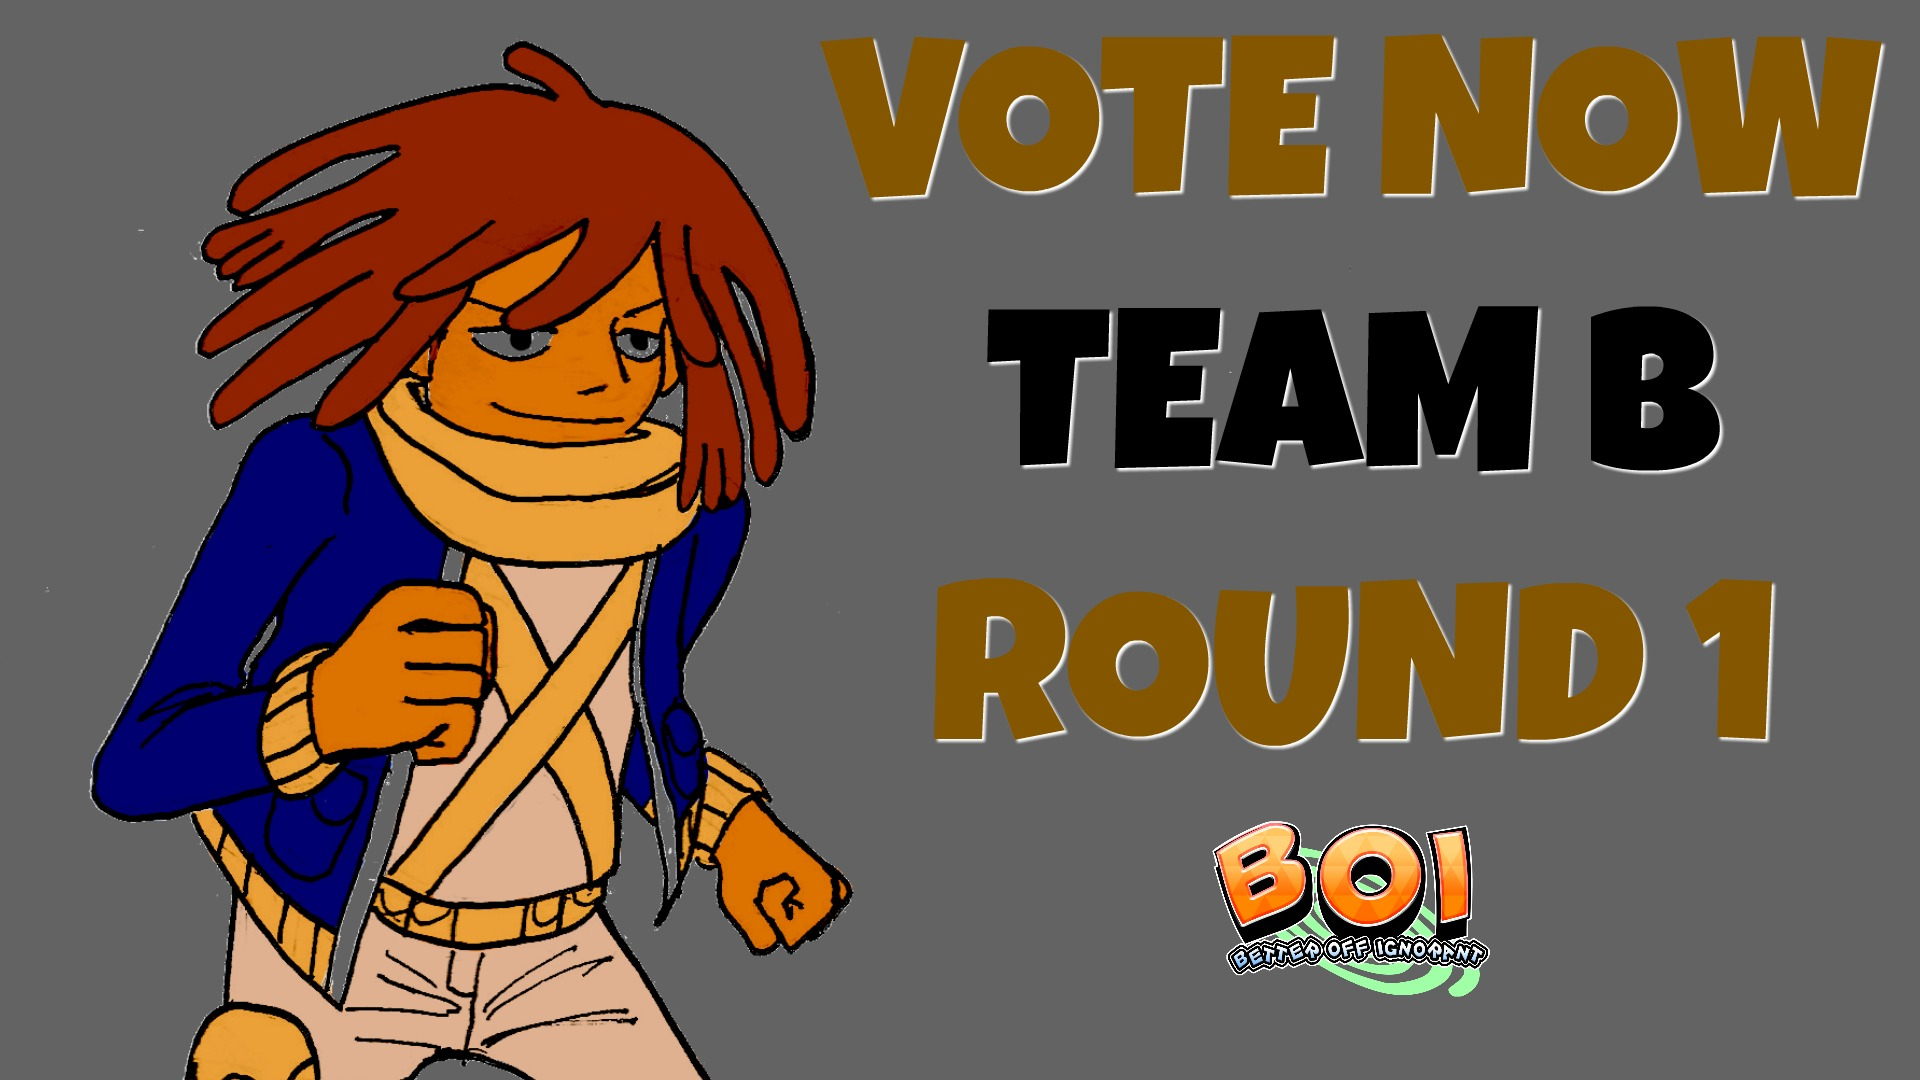 CLICK THE IMAGE TO VOTE FOR TEAM B ROUND 1 MATCHUPS --- scroll down for more teams.